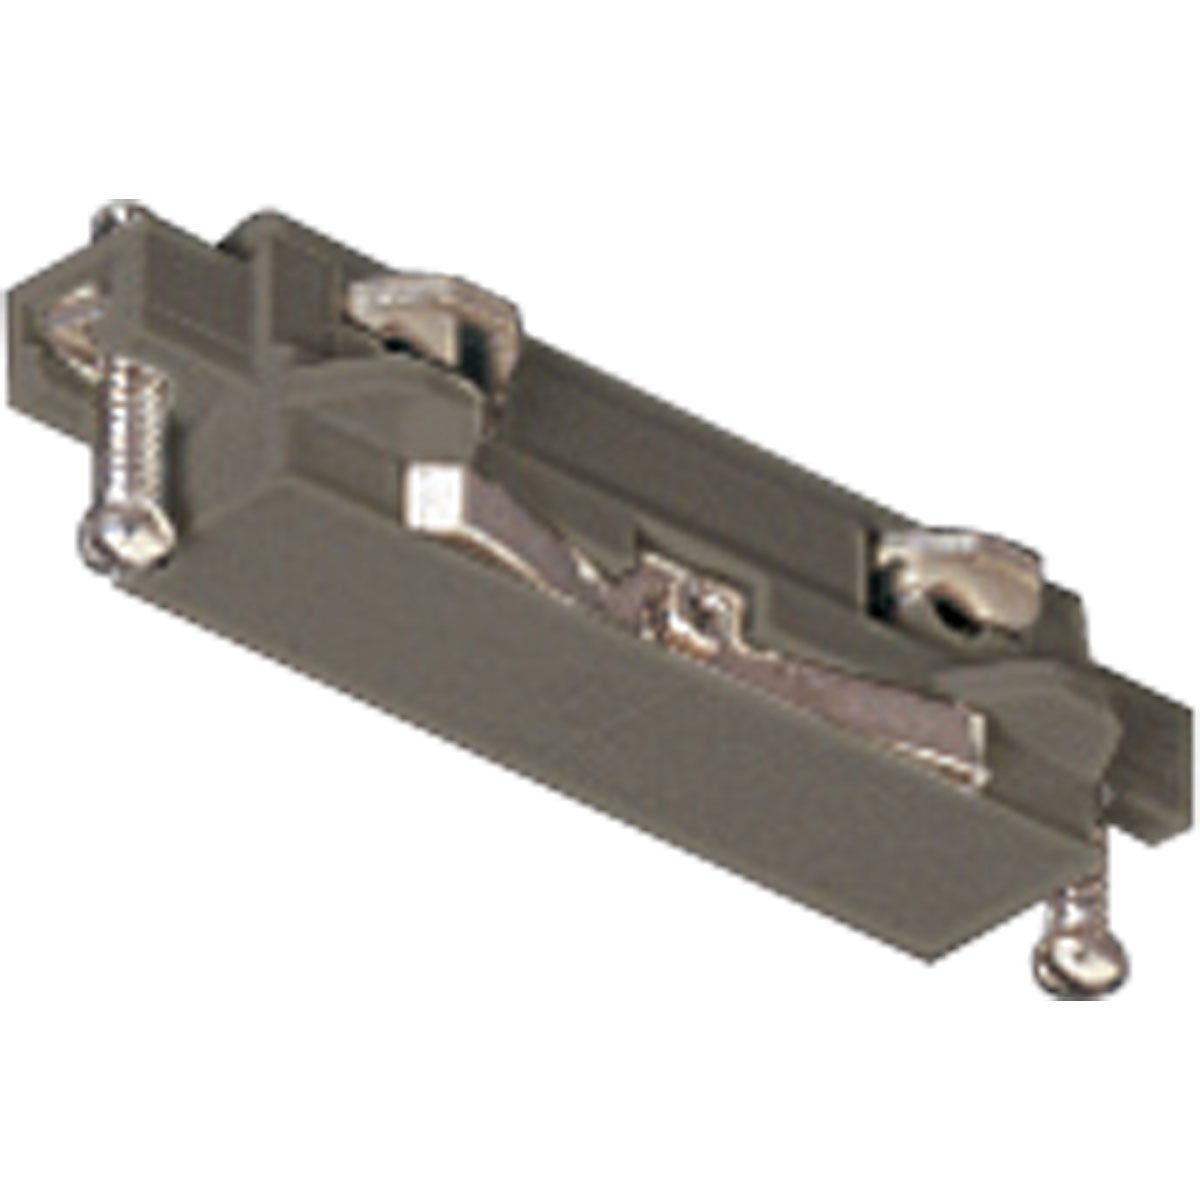 Progress Lighting P8720-09 Straight Connector For Joining 2 Or More Track Sections The Connectors Plug Into Track Sections Only 1 Way, Brushed Nickel